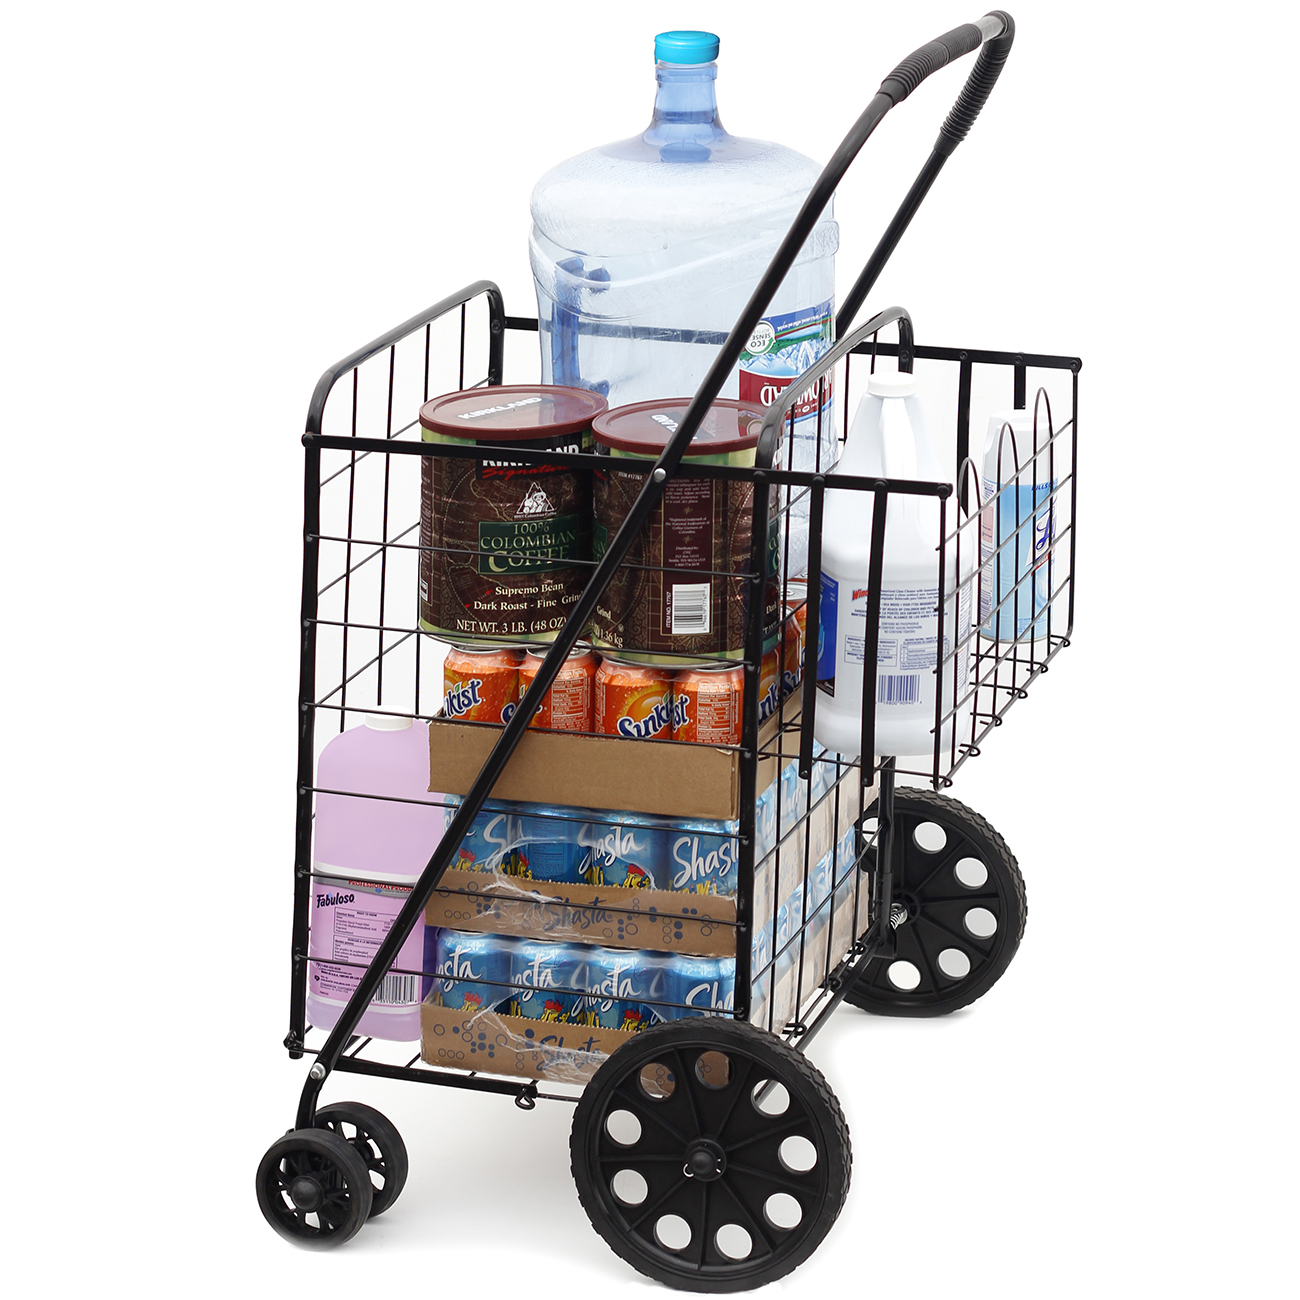 folding shopping cart jumbo size basket with wheels for laundry grocery travel